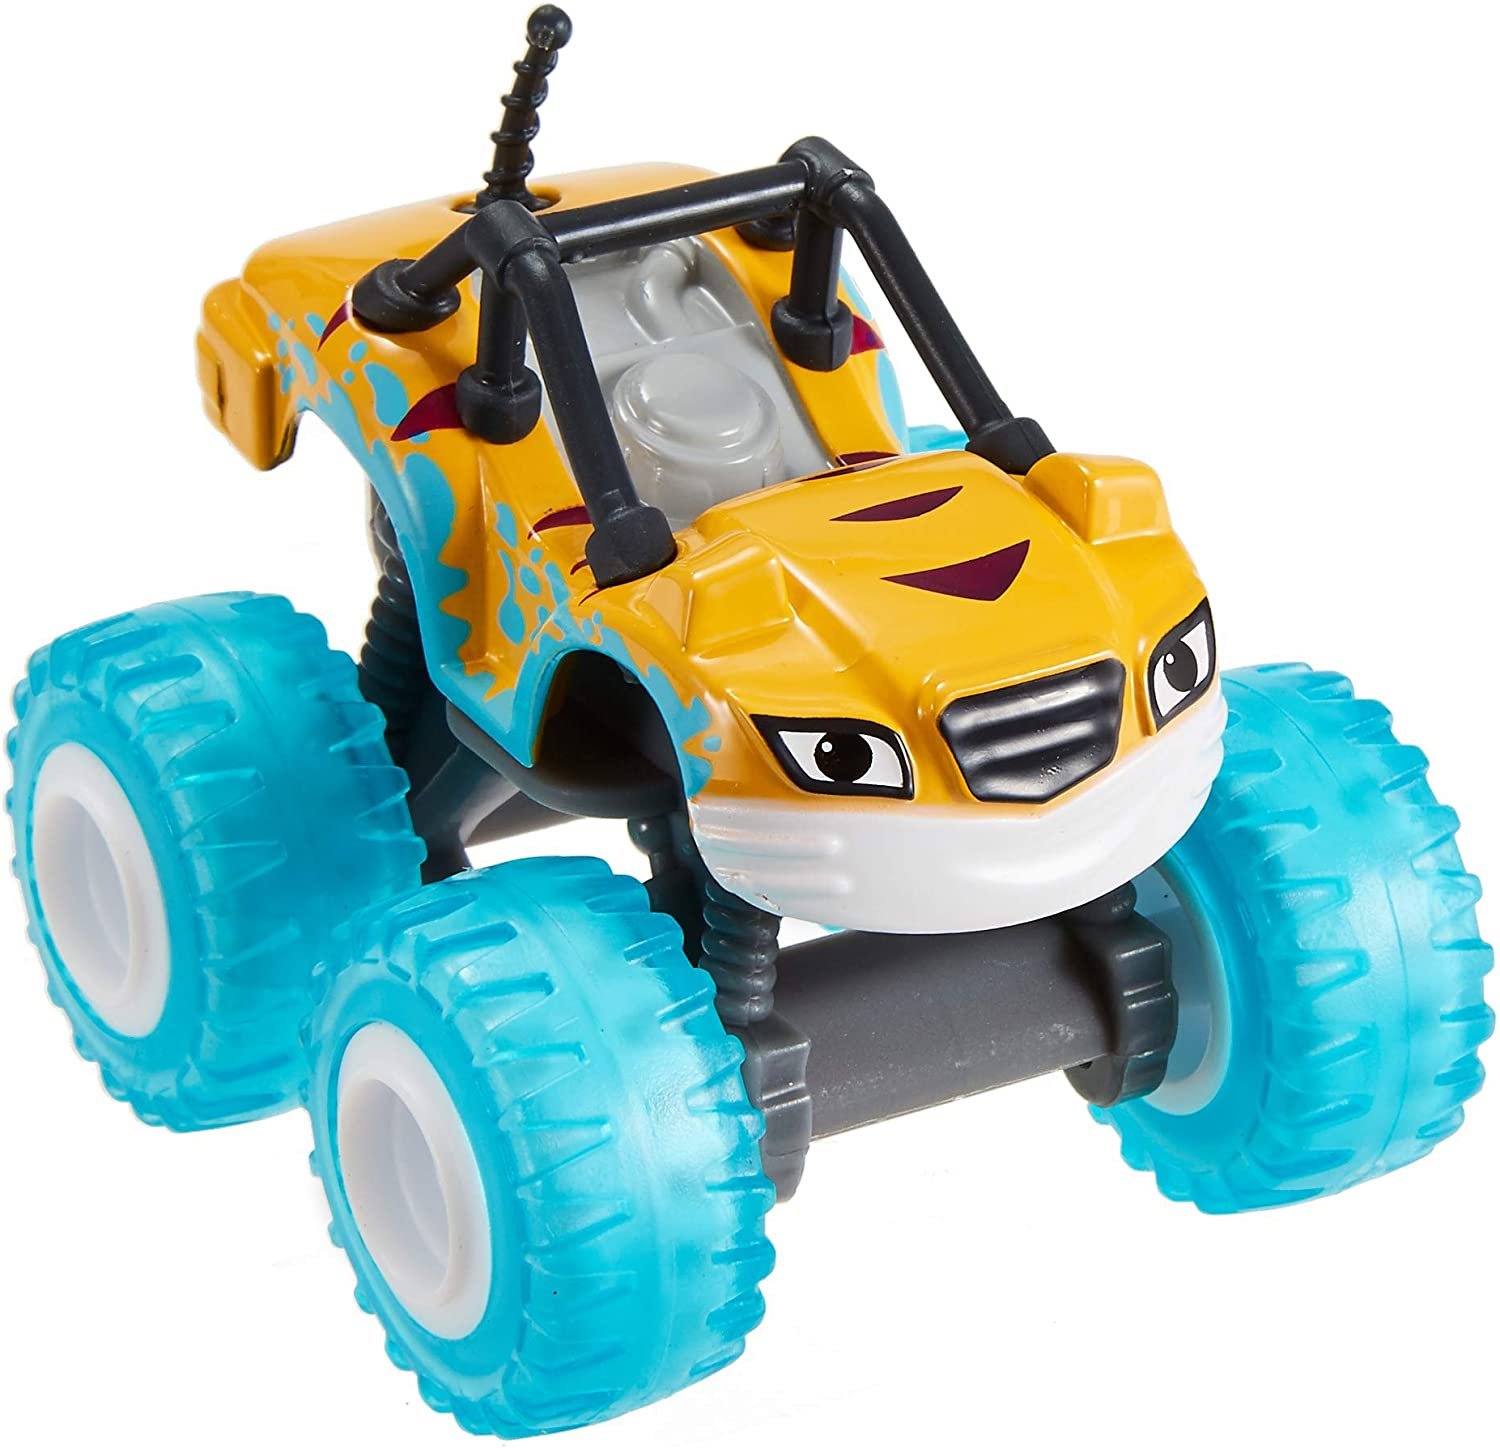 Fisher-Price Nickelodeon Blaze & The Monster Machines, Water Rider Stripes